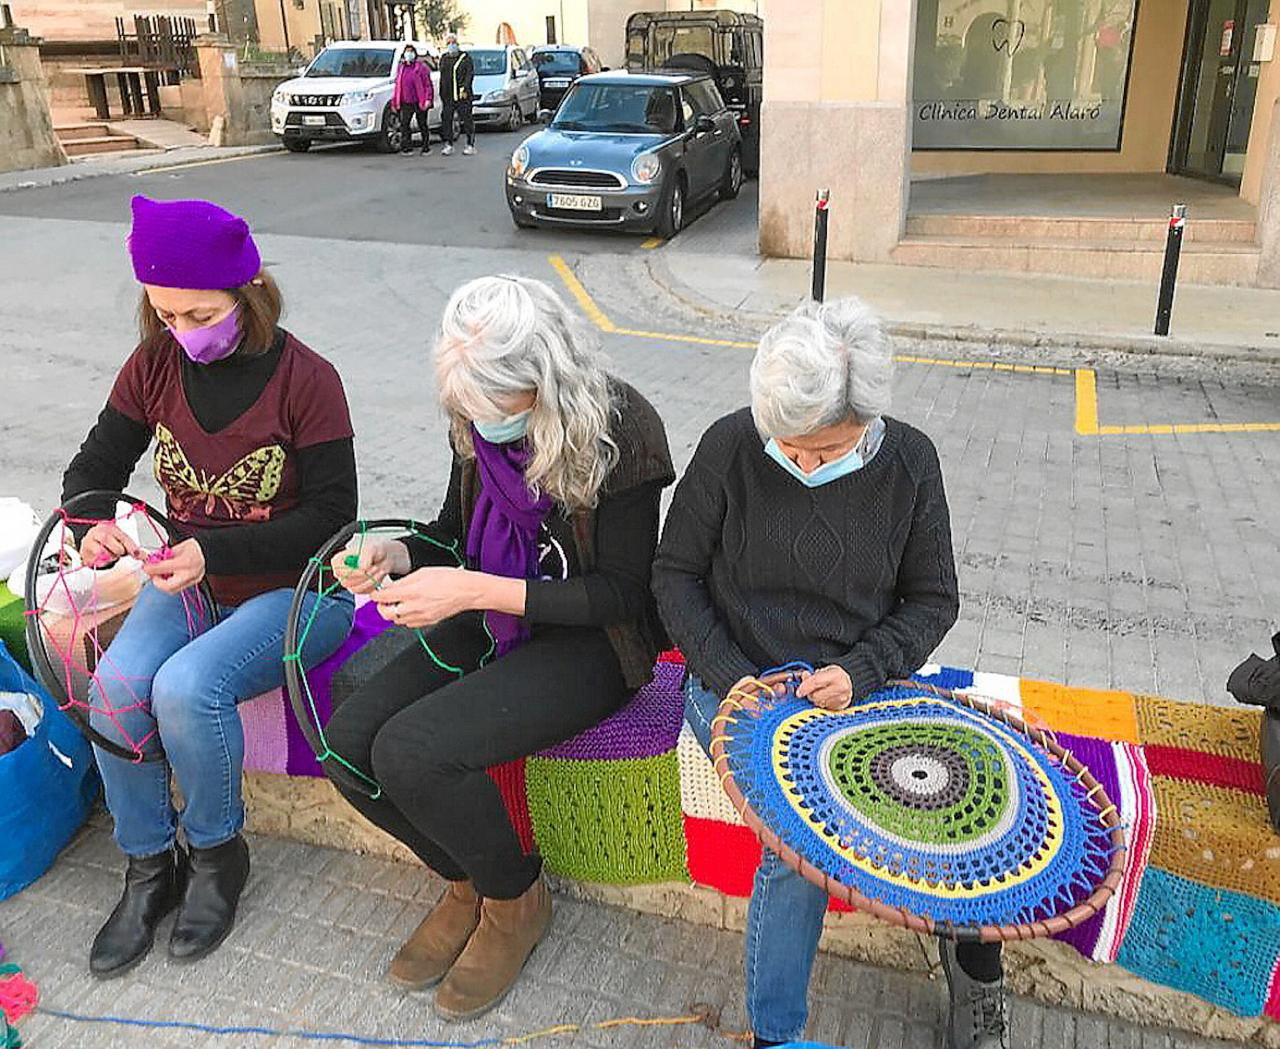 'Teixits de Sororitat' members weaving an awning against sexist violence for International Women's Day.